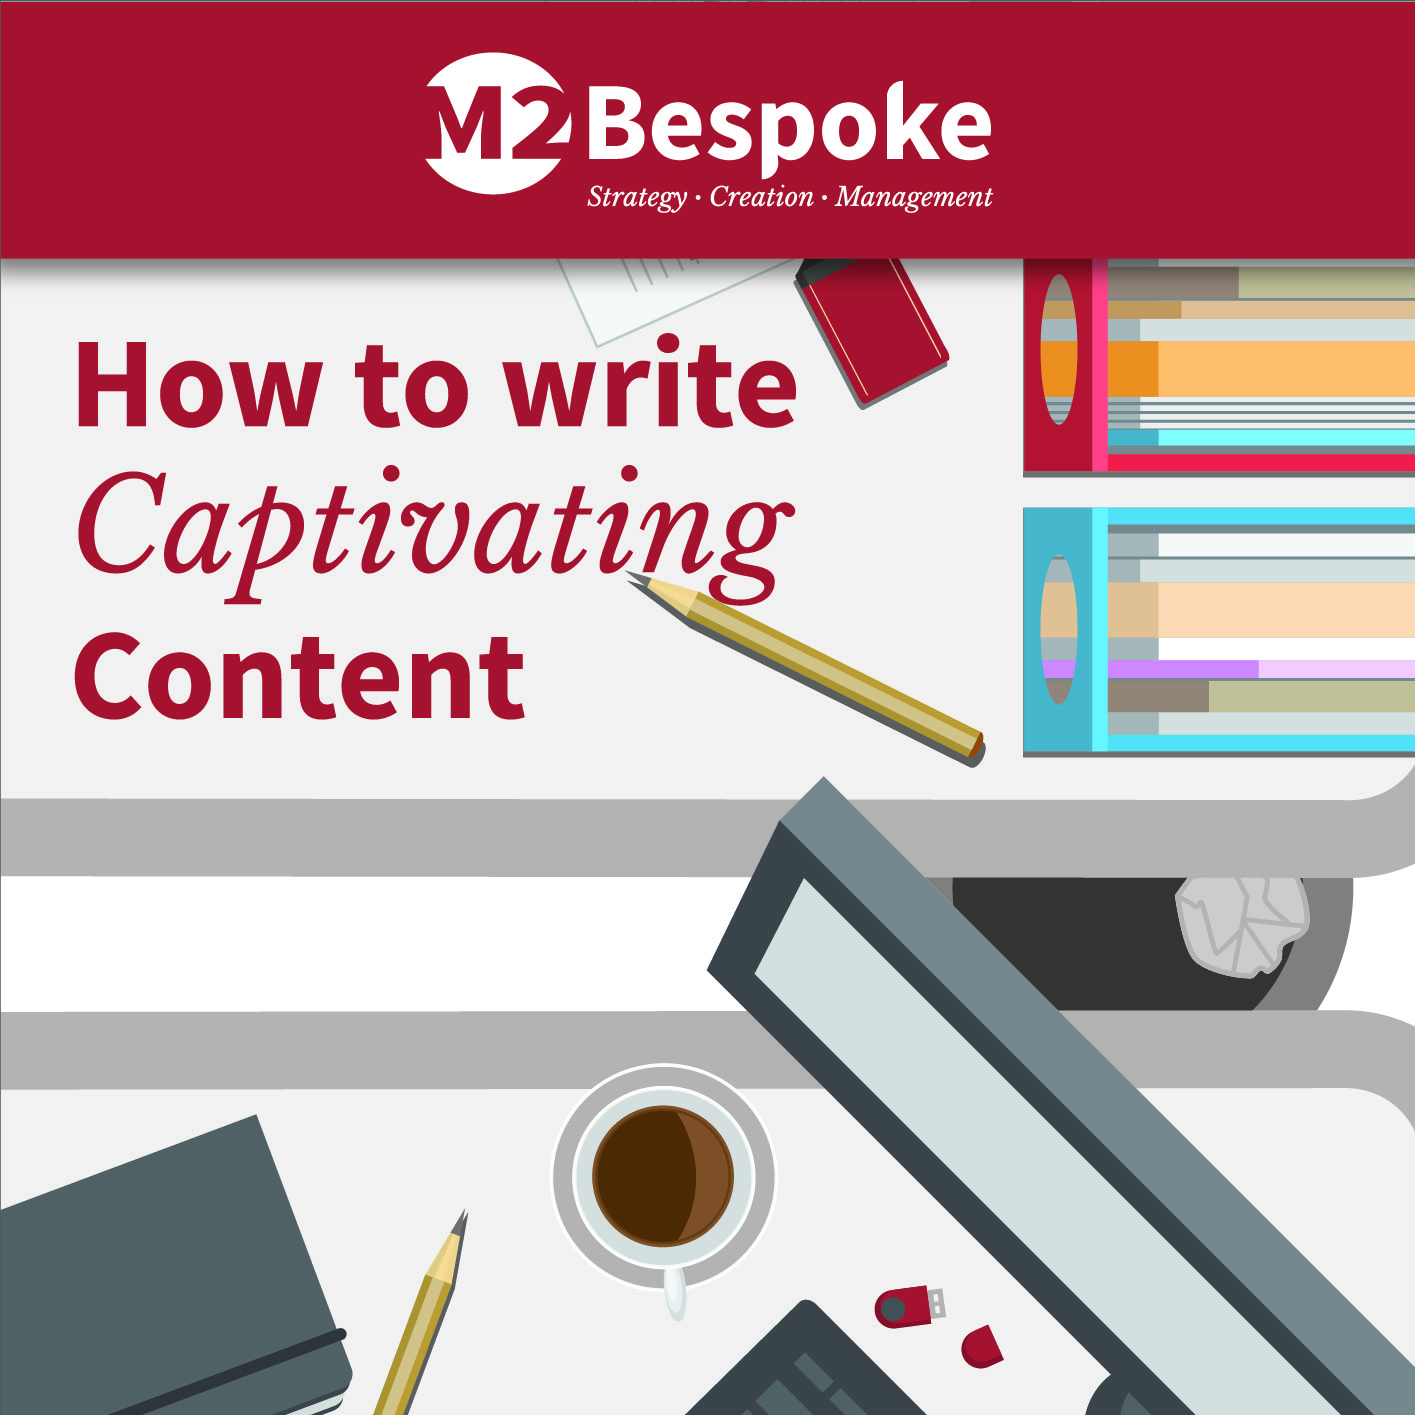 How To Write Captivating Content M2 Bespoke Blog